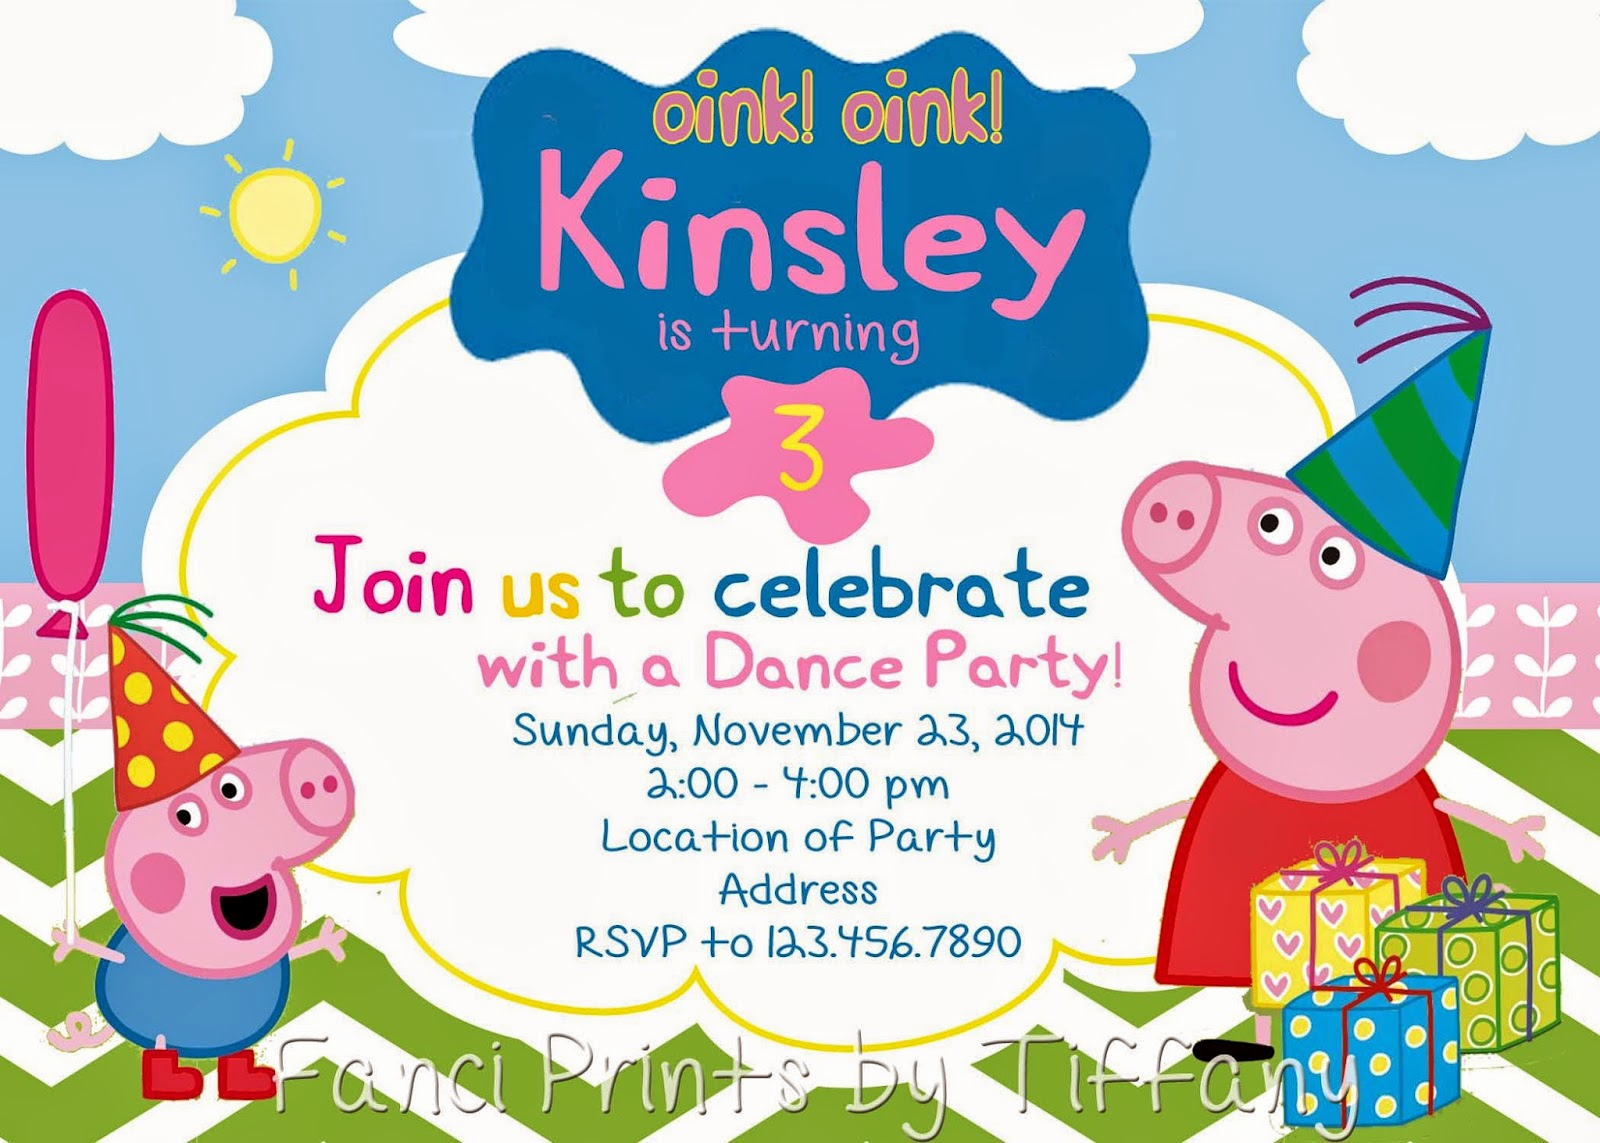 Peppa Pig Invitation Template Free Inspirational Fanci Prints by Tiffany